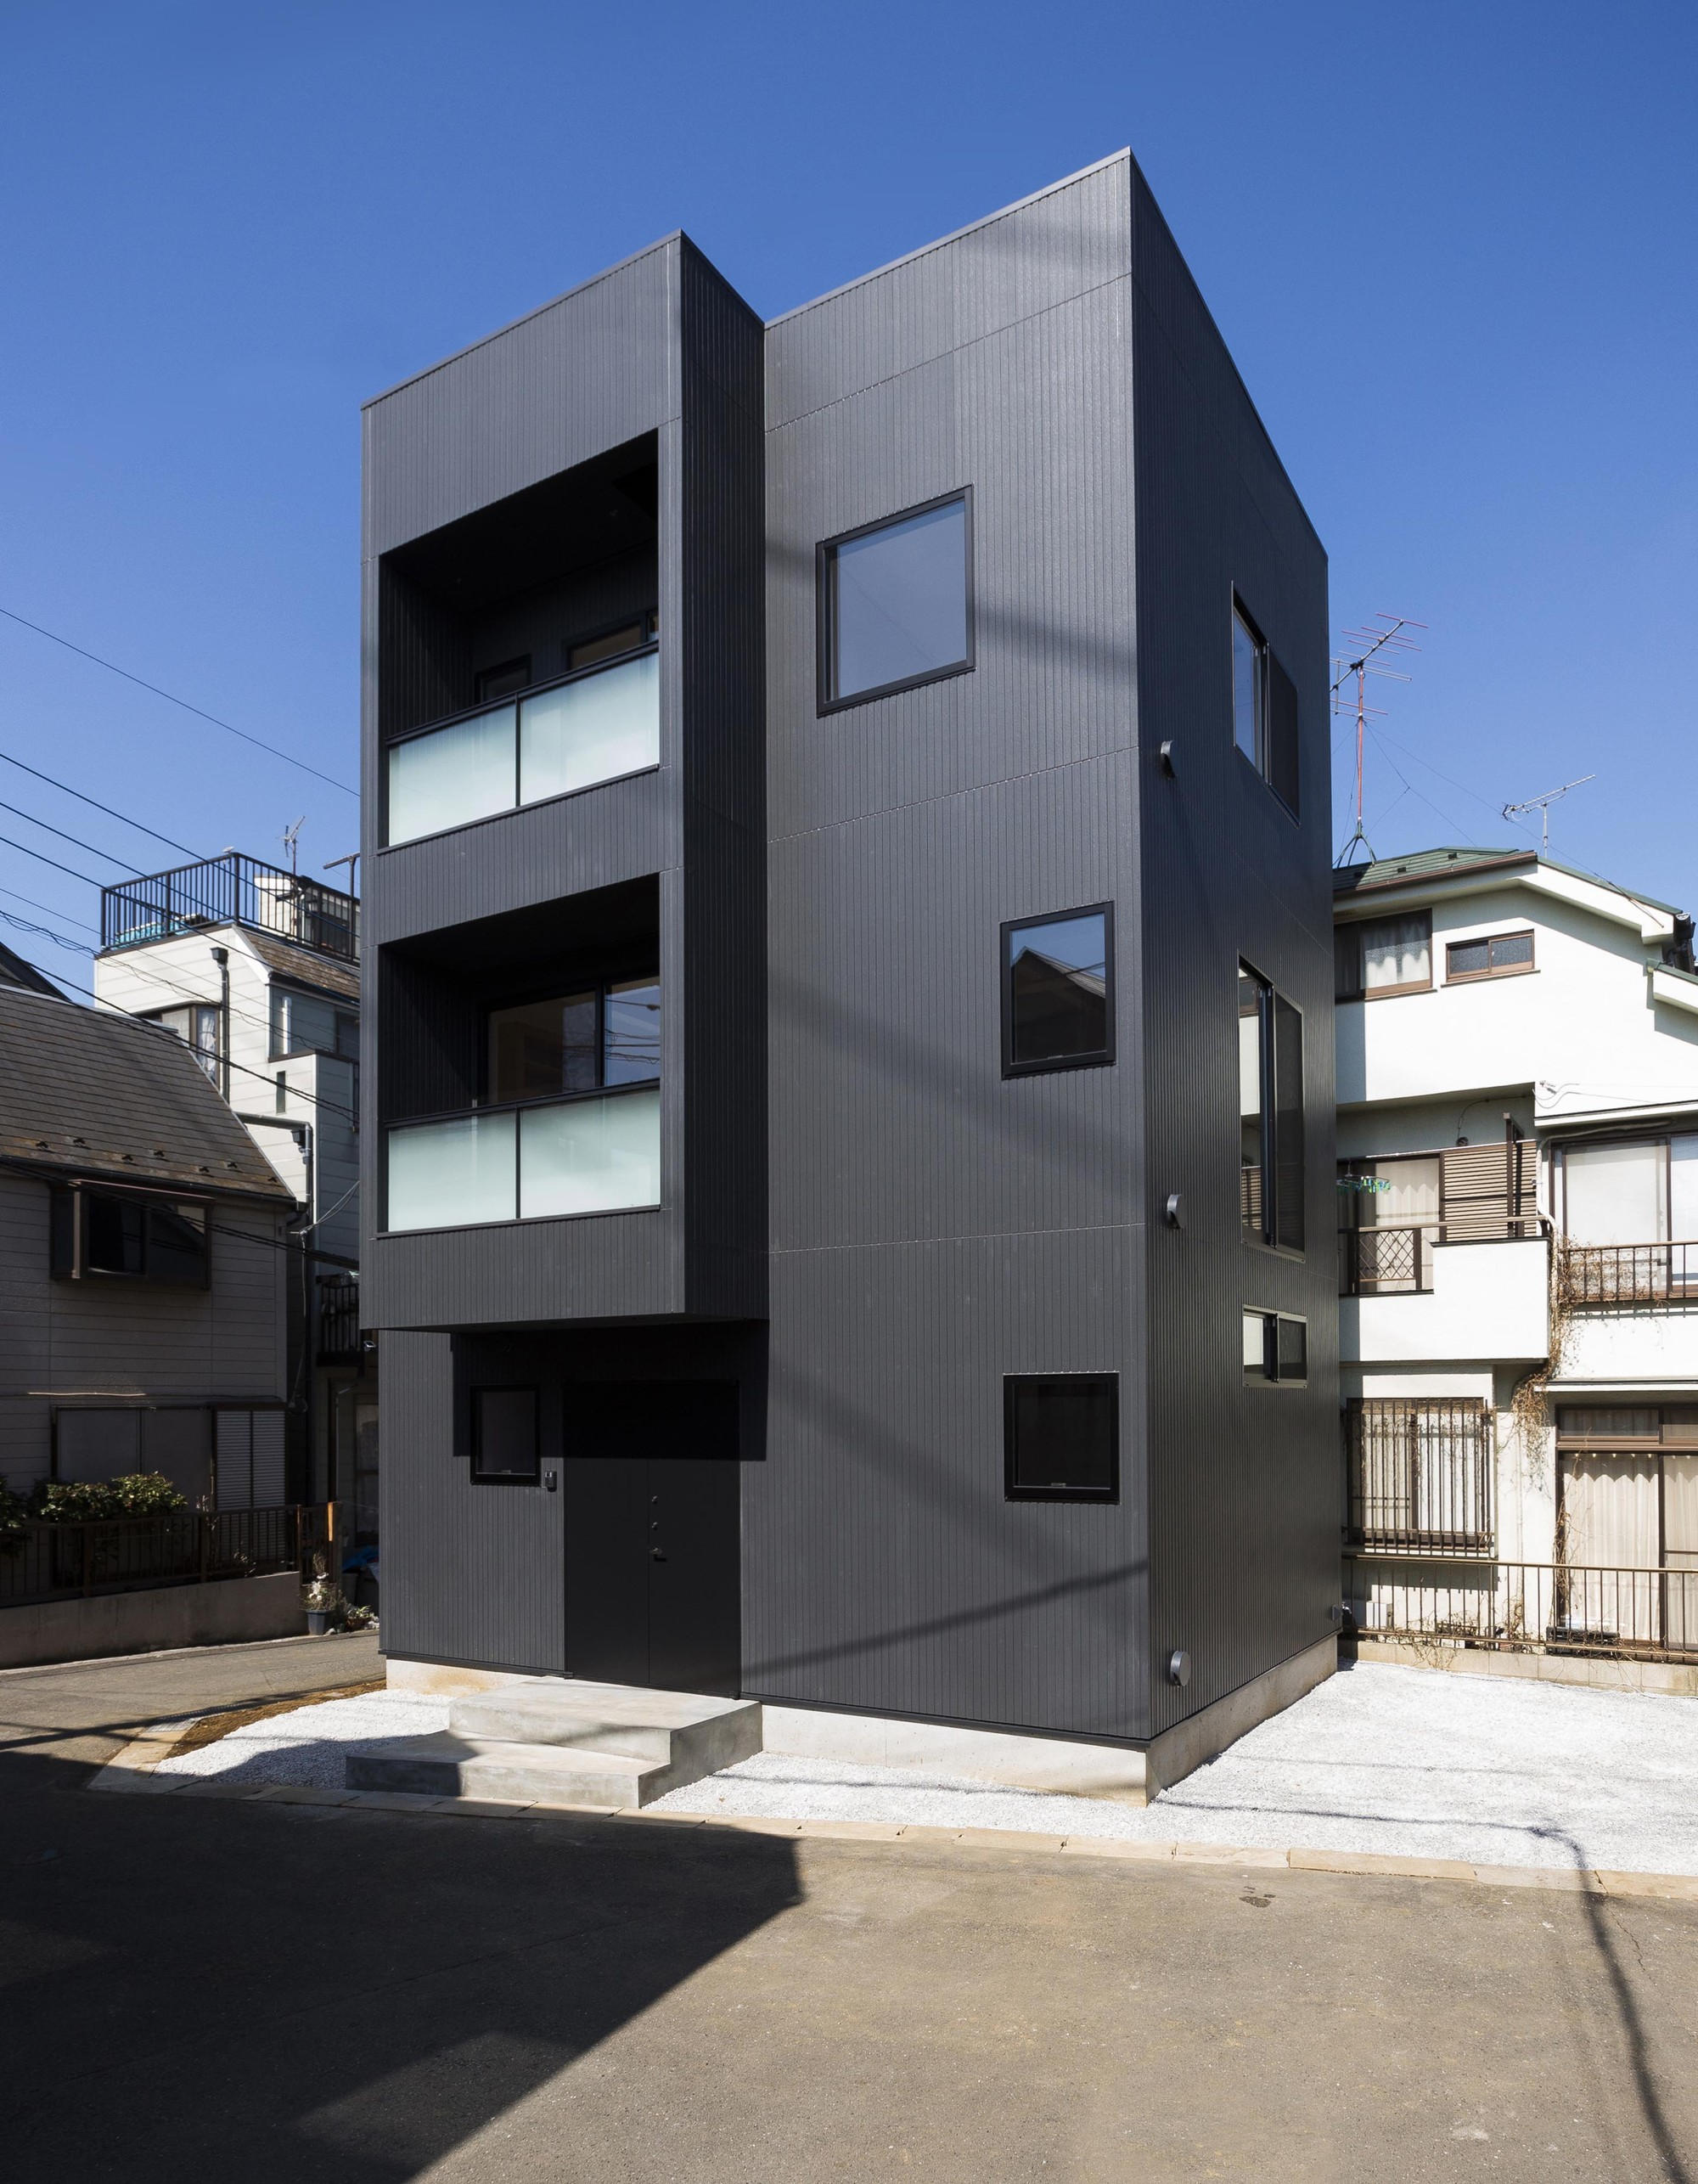 Casa hibarigaoka s kaida architecture design office - Small office building exterior design ideas ...